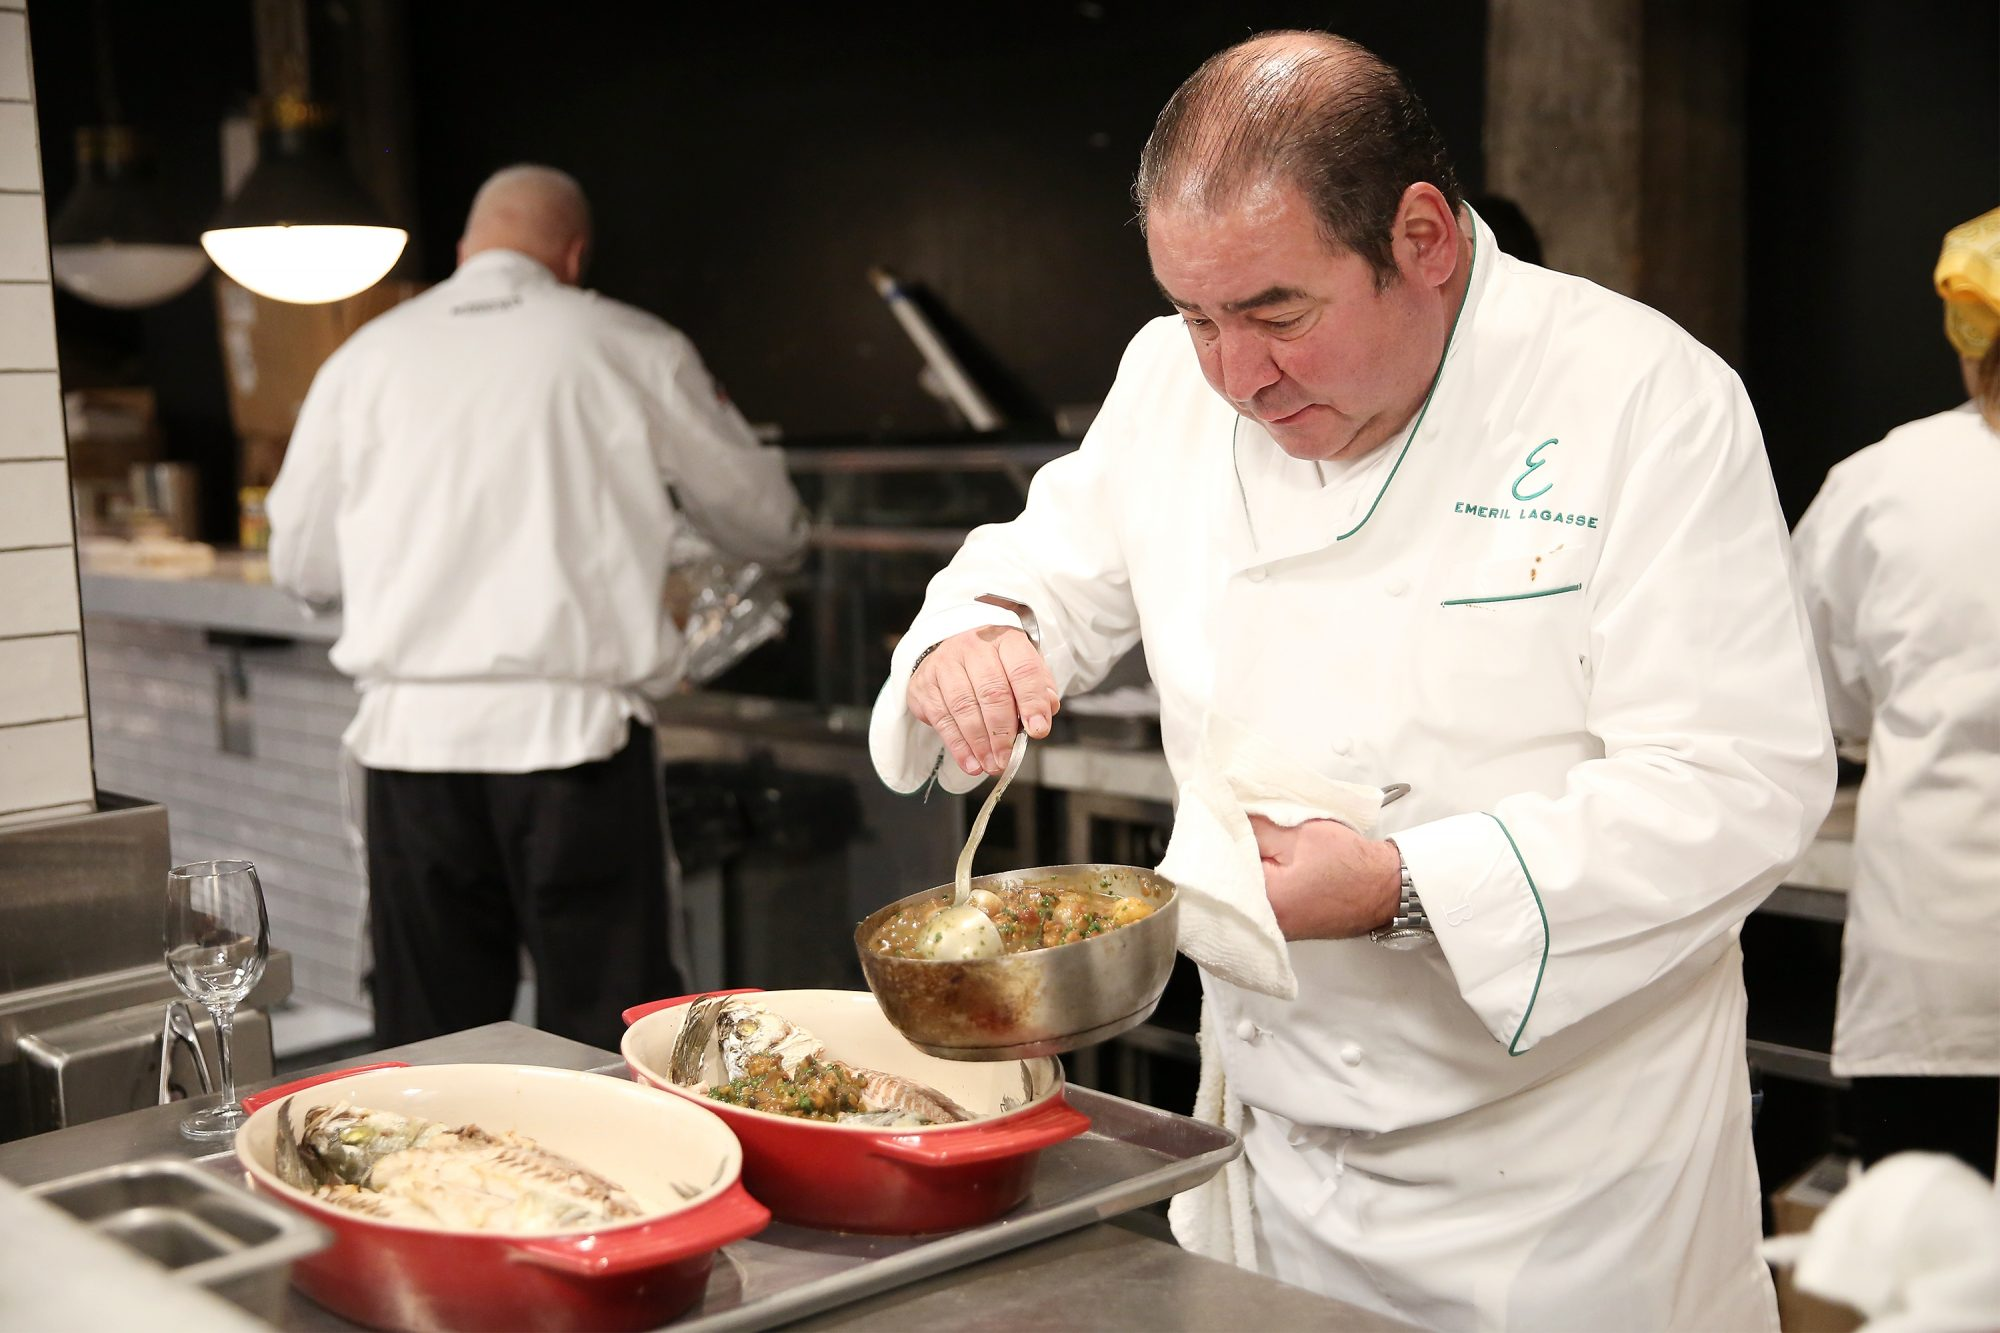 Emeril-Lagasse-First-Restaurant-New-York-FT.jpg